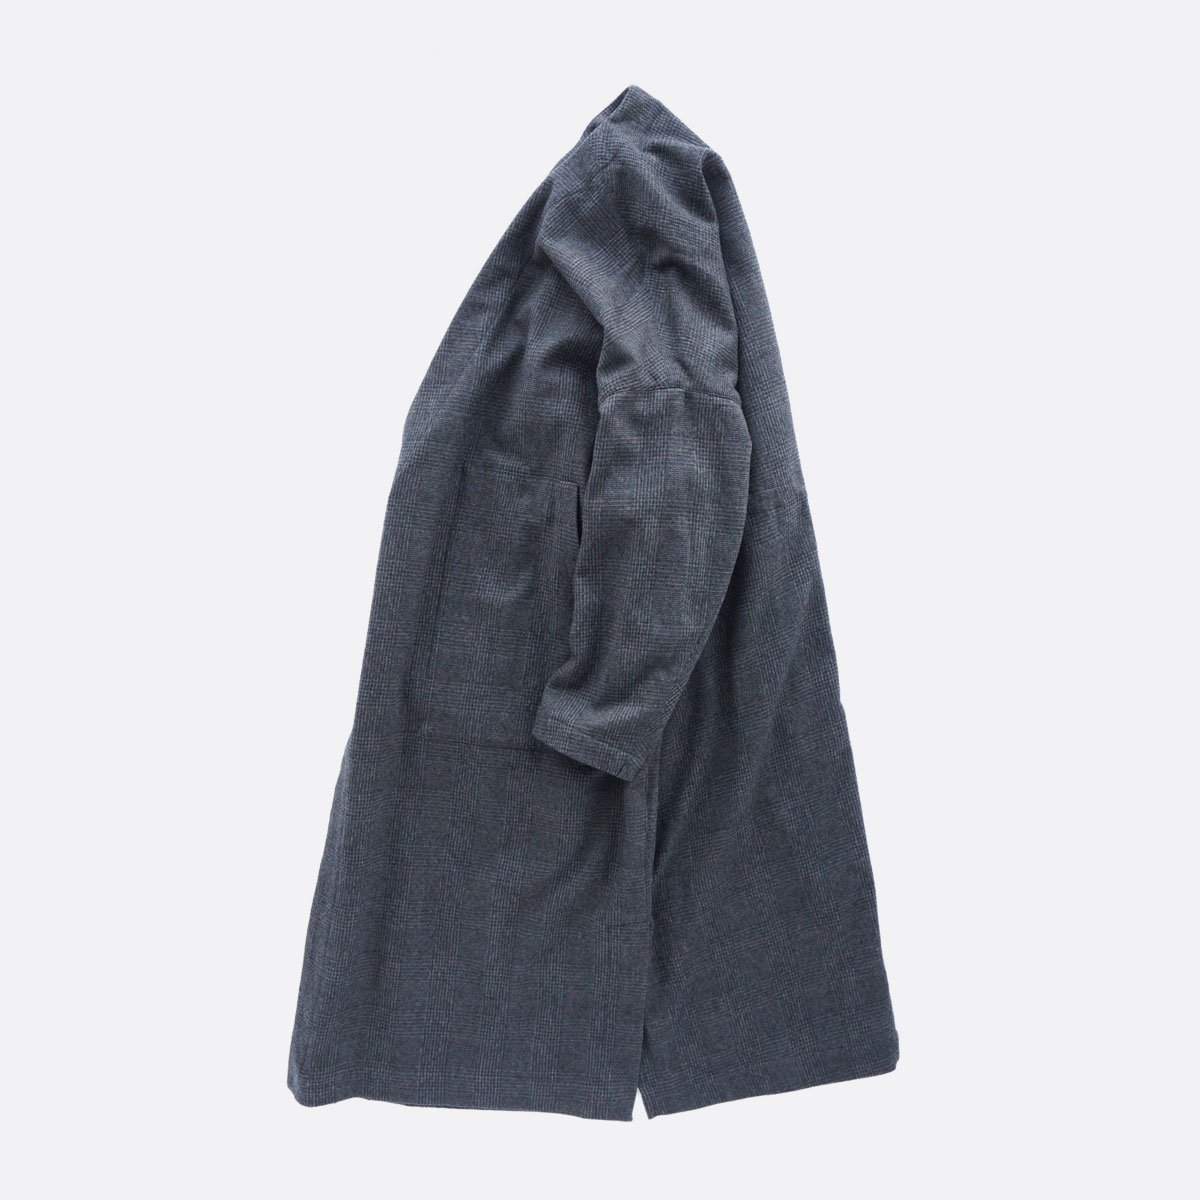 FIRMUM MILLING WOOL & COTTON TWILL COAT (GREY&BLACK/CH)4